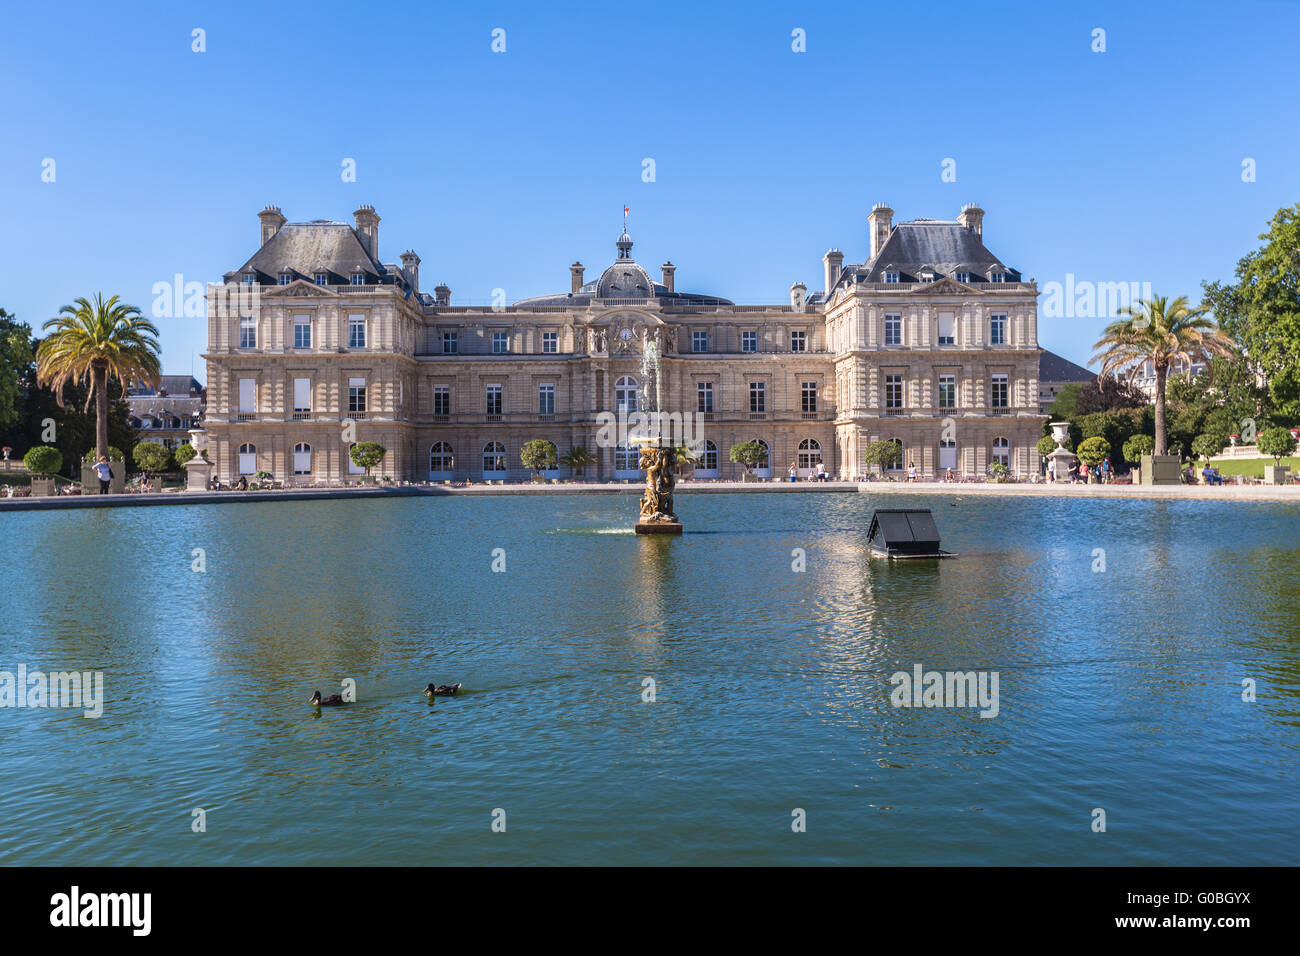 Luxembourg Palace in Jardin du Luxembourg, Paris, France - Stock Image